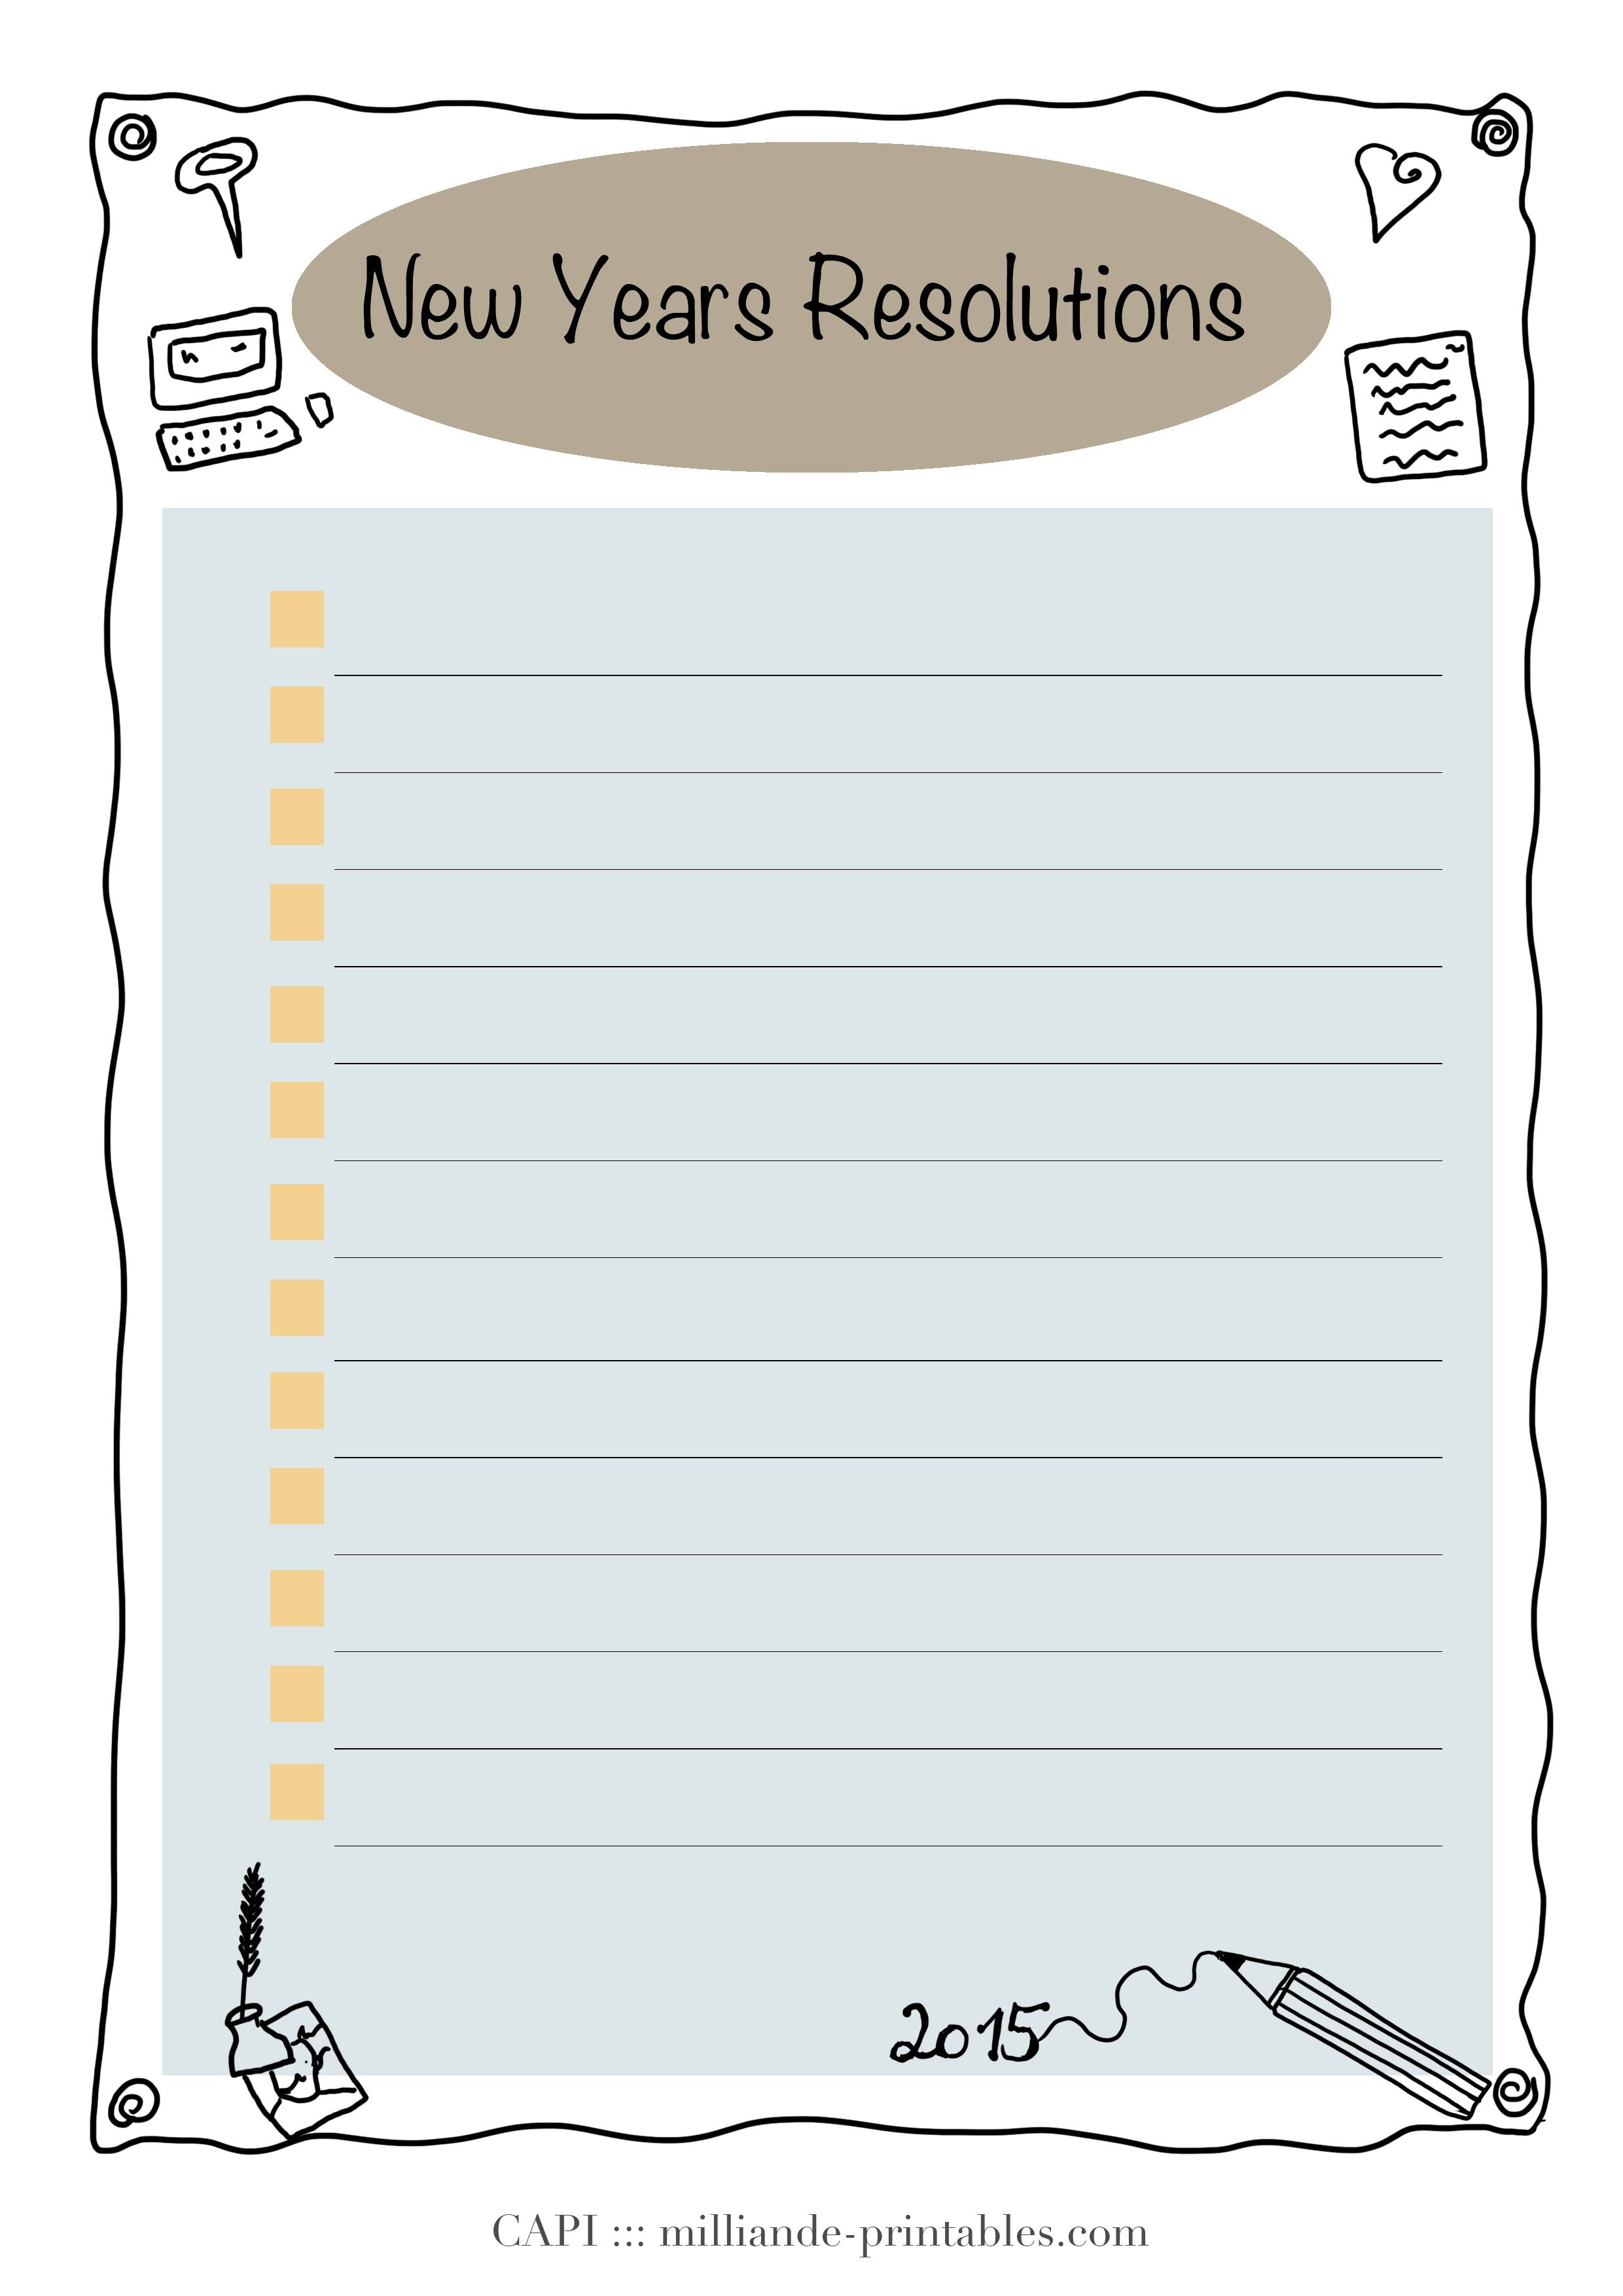 A Simple Tick List New Year Resolution Card